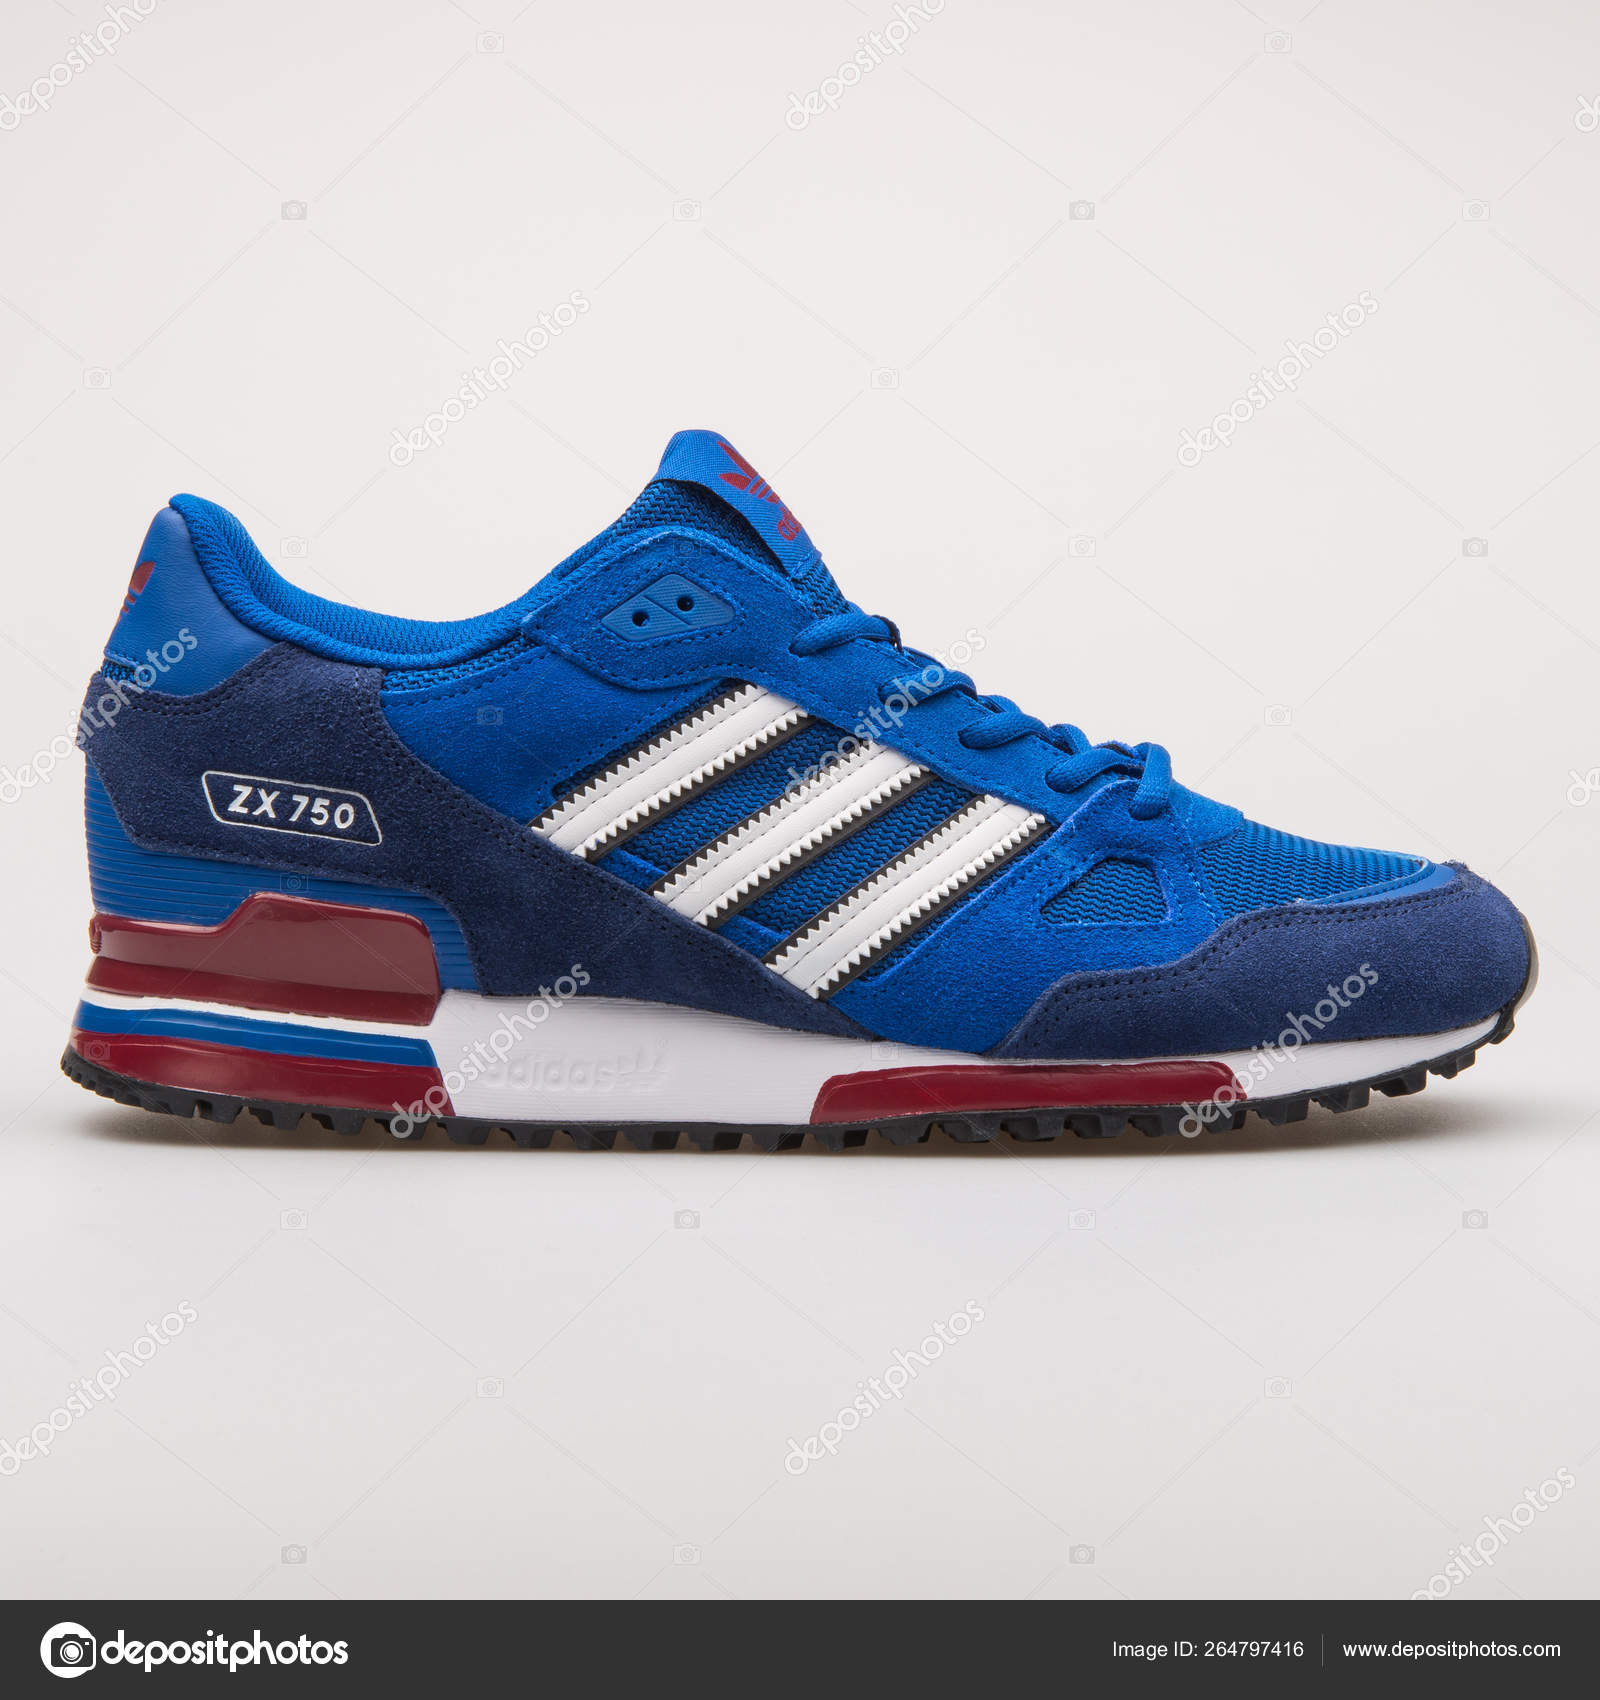 chaussures de sport c1f54 517bb Adidas ZX750 blue sneaker – Stock Editorial Photo ...